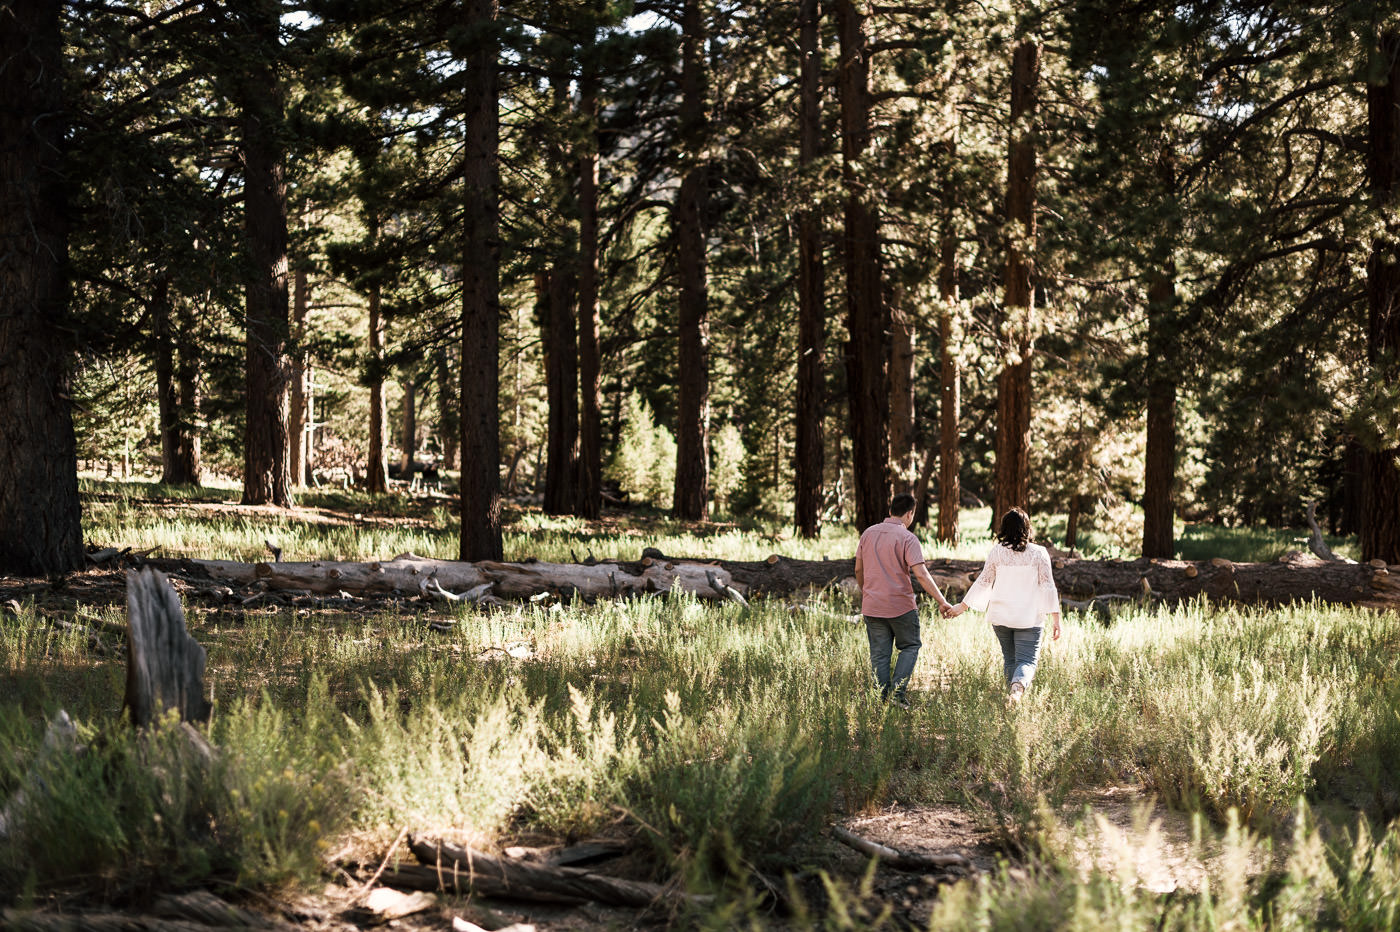 Romantic stroll through the forest after an intimate engagement on Mt San Jacinto